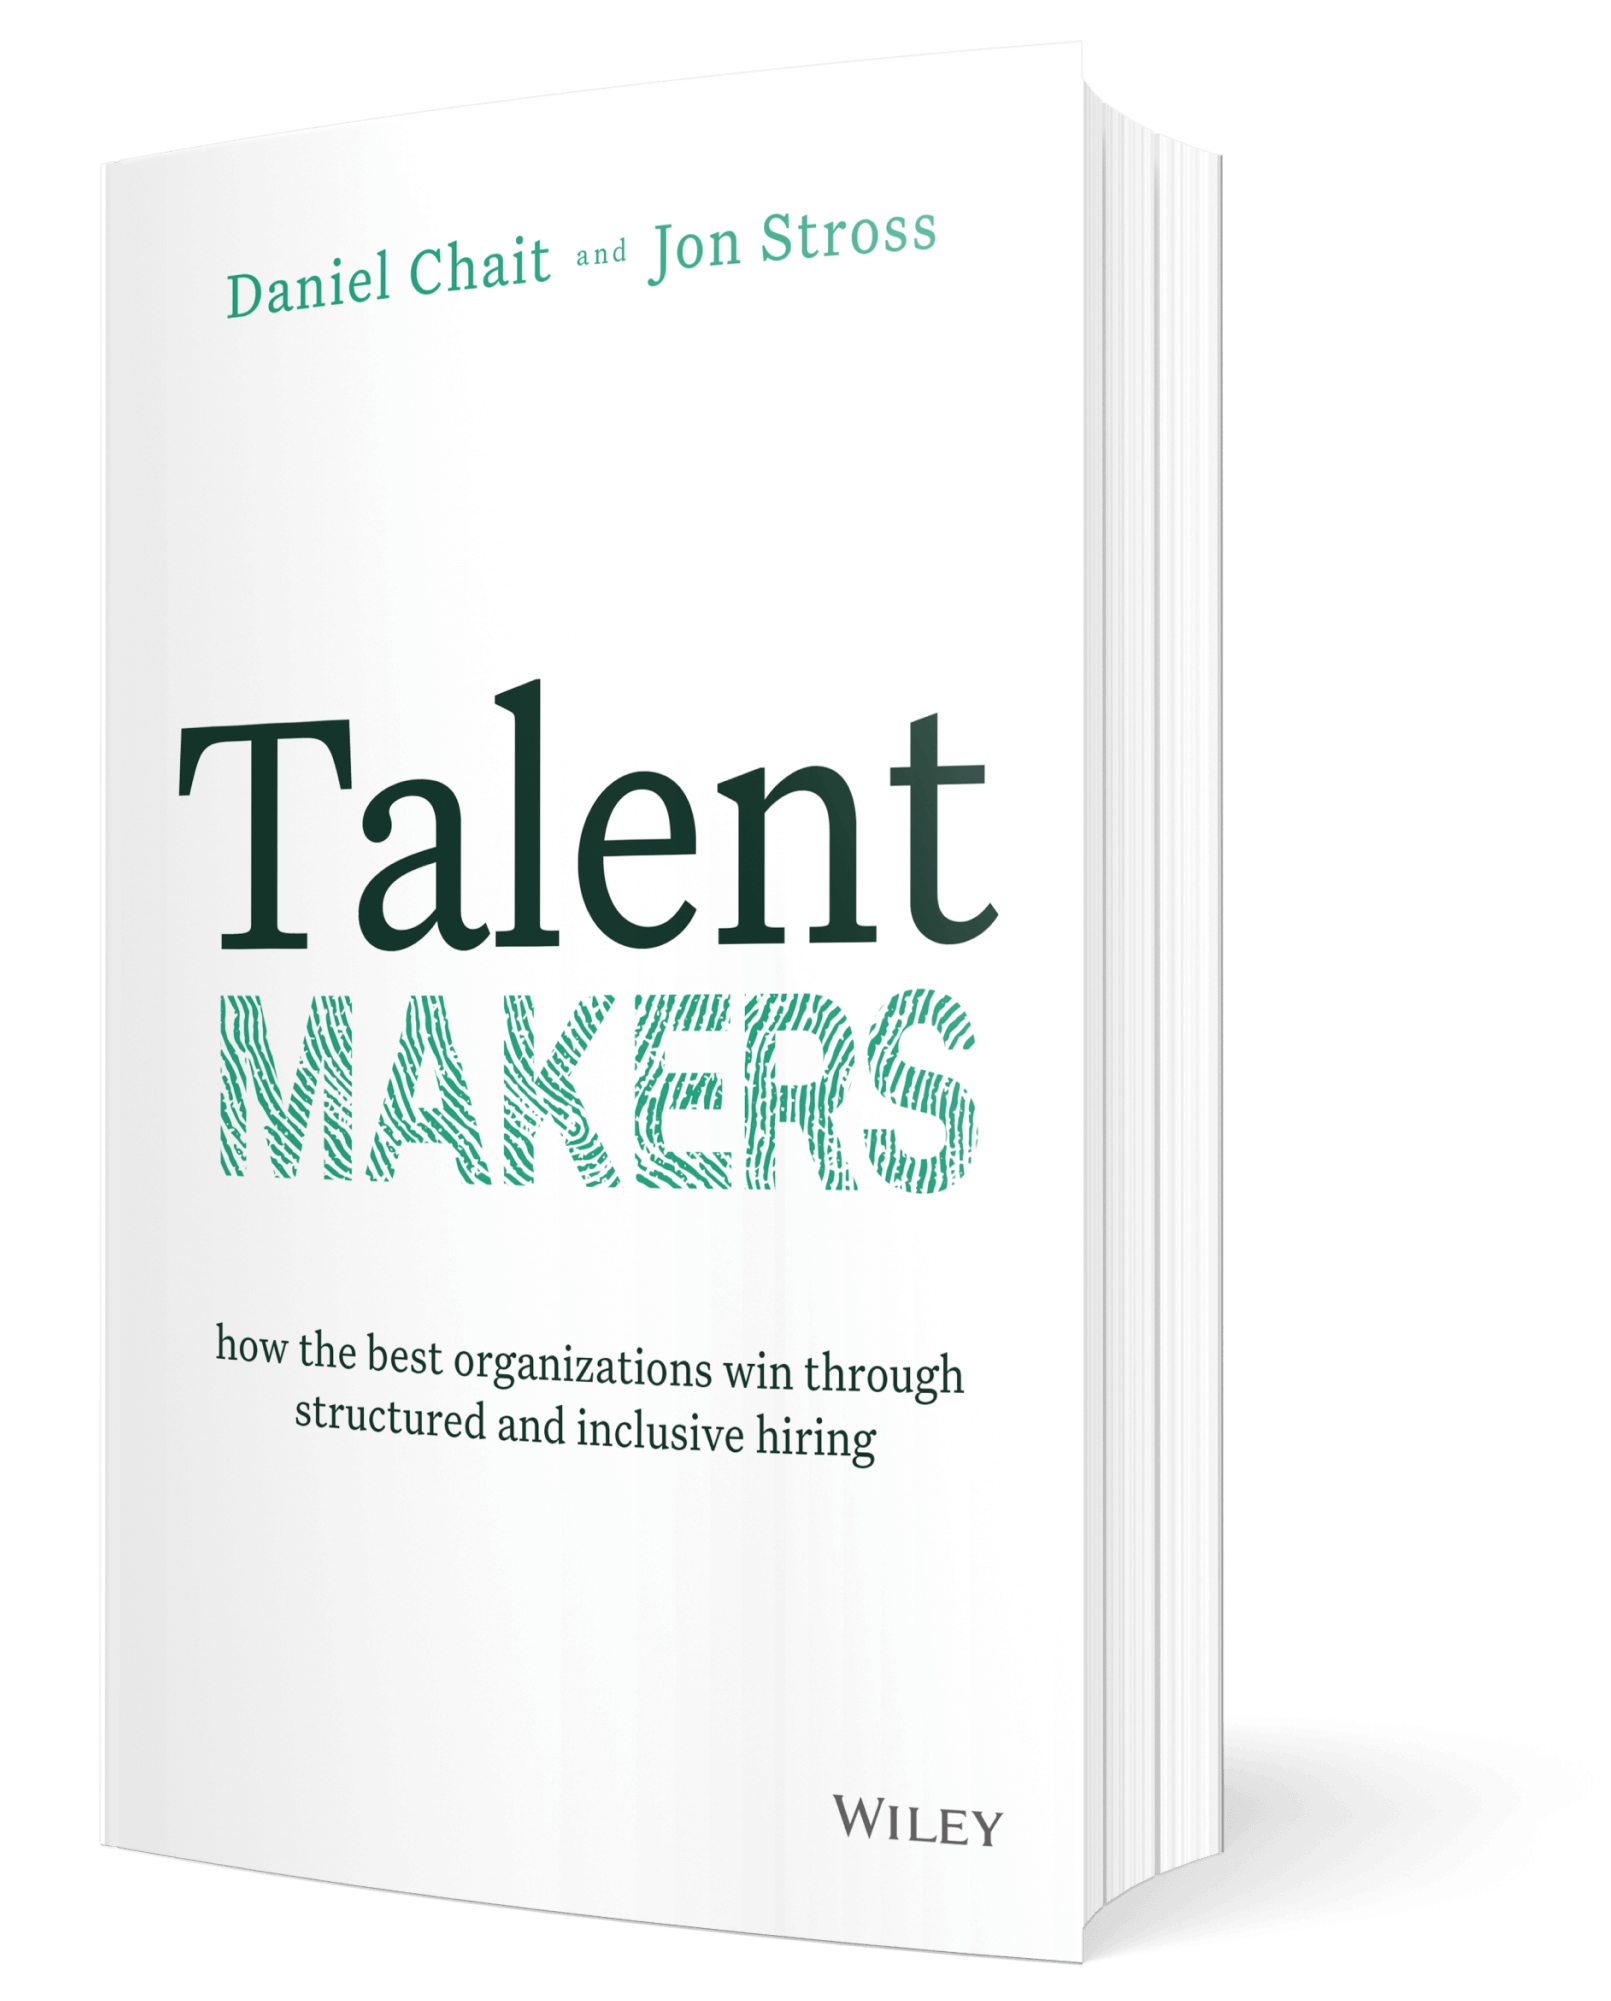 Image of the cover of Talent Makers book